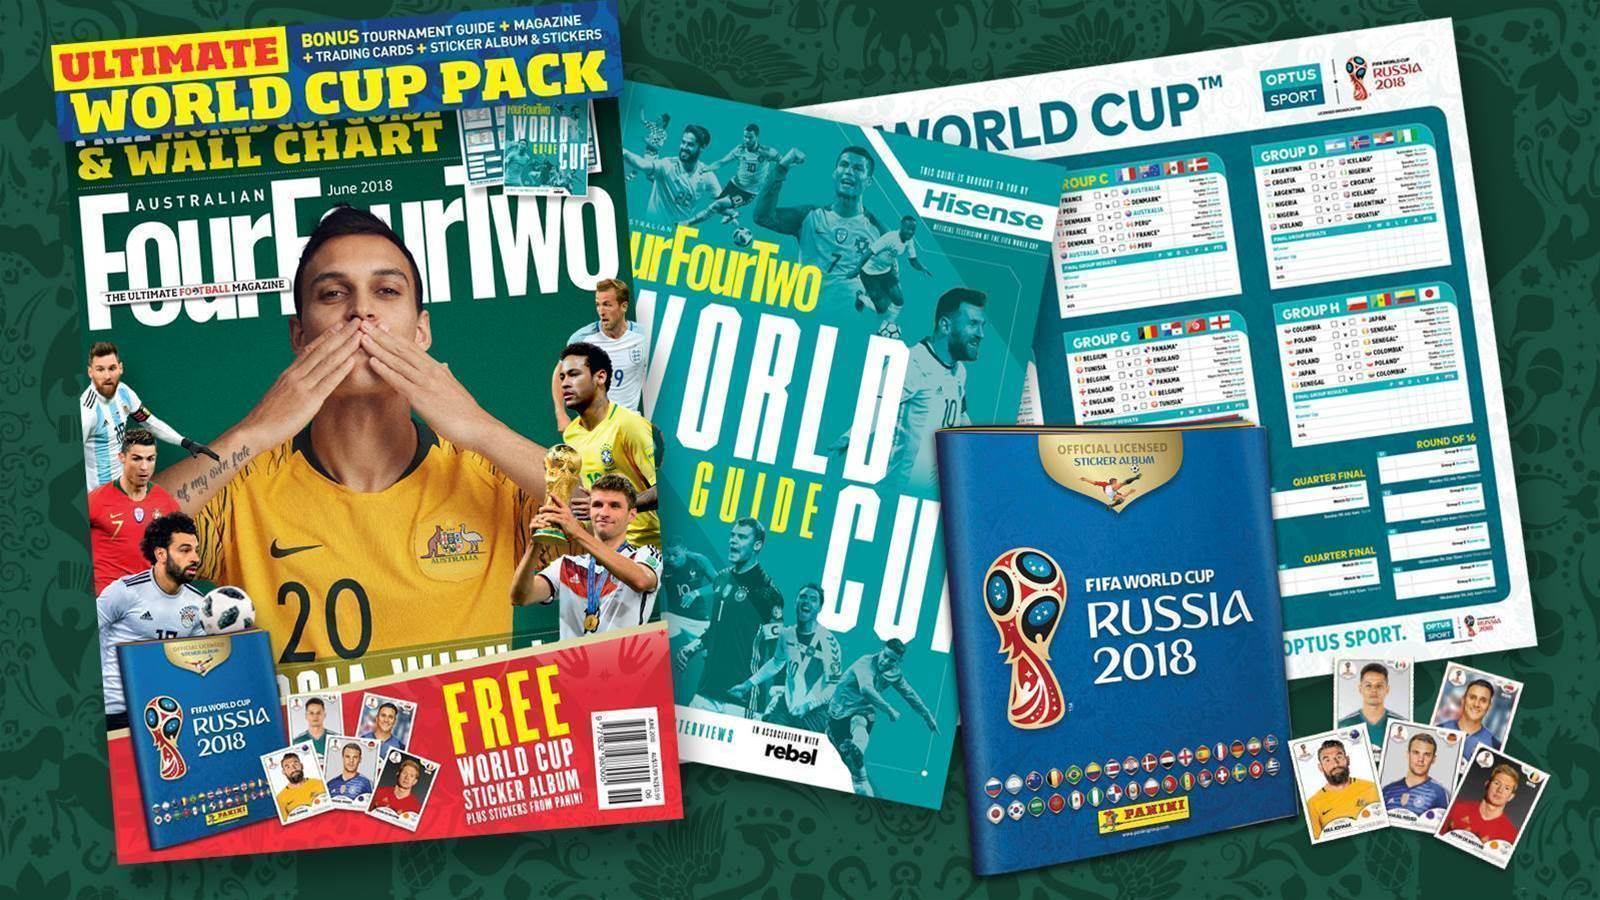 All you need for the World Cup...